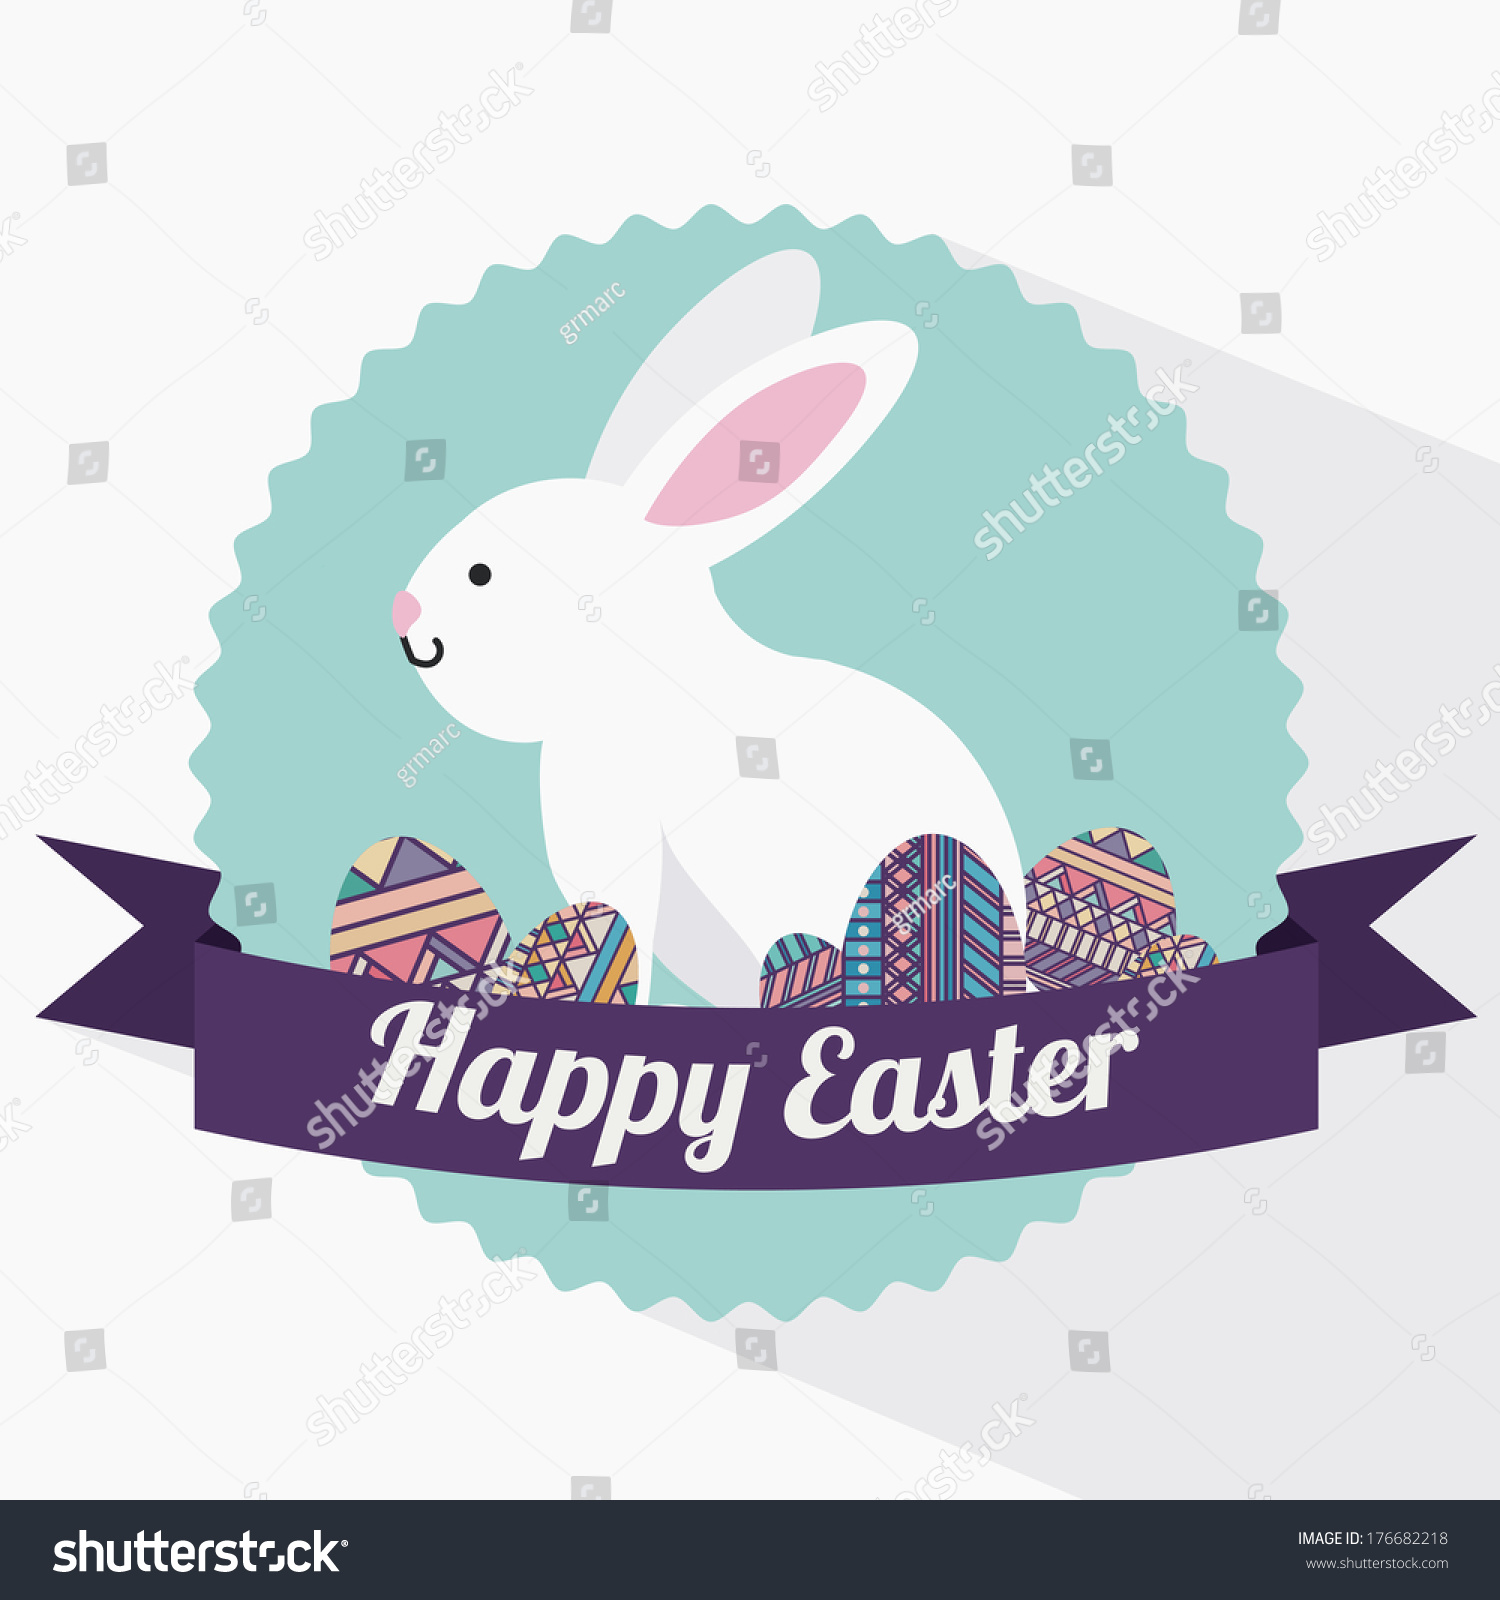 Happy Easter Over White Background Vector Stock Vector ...